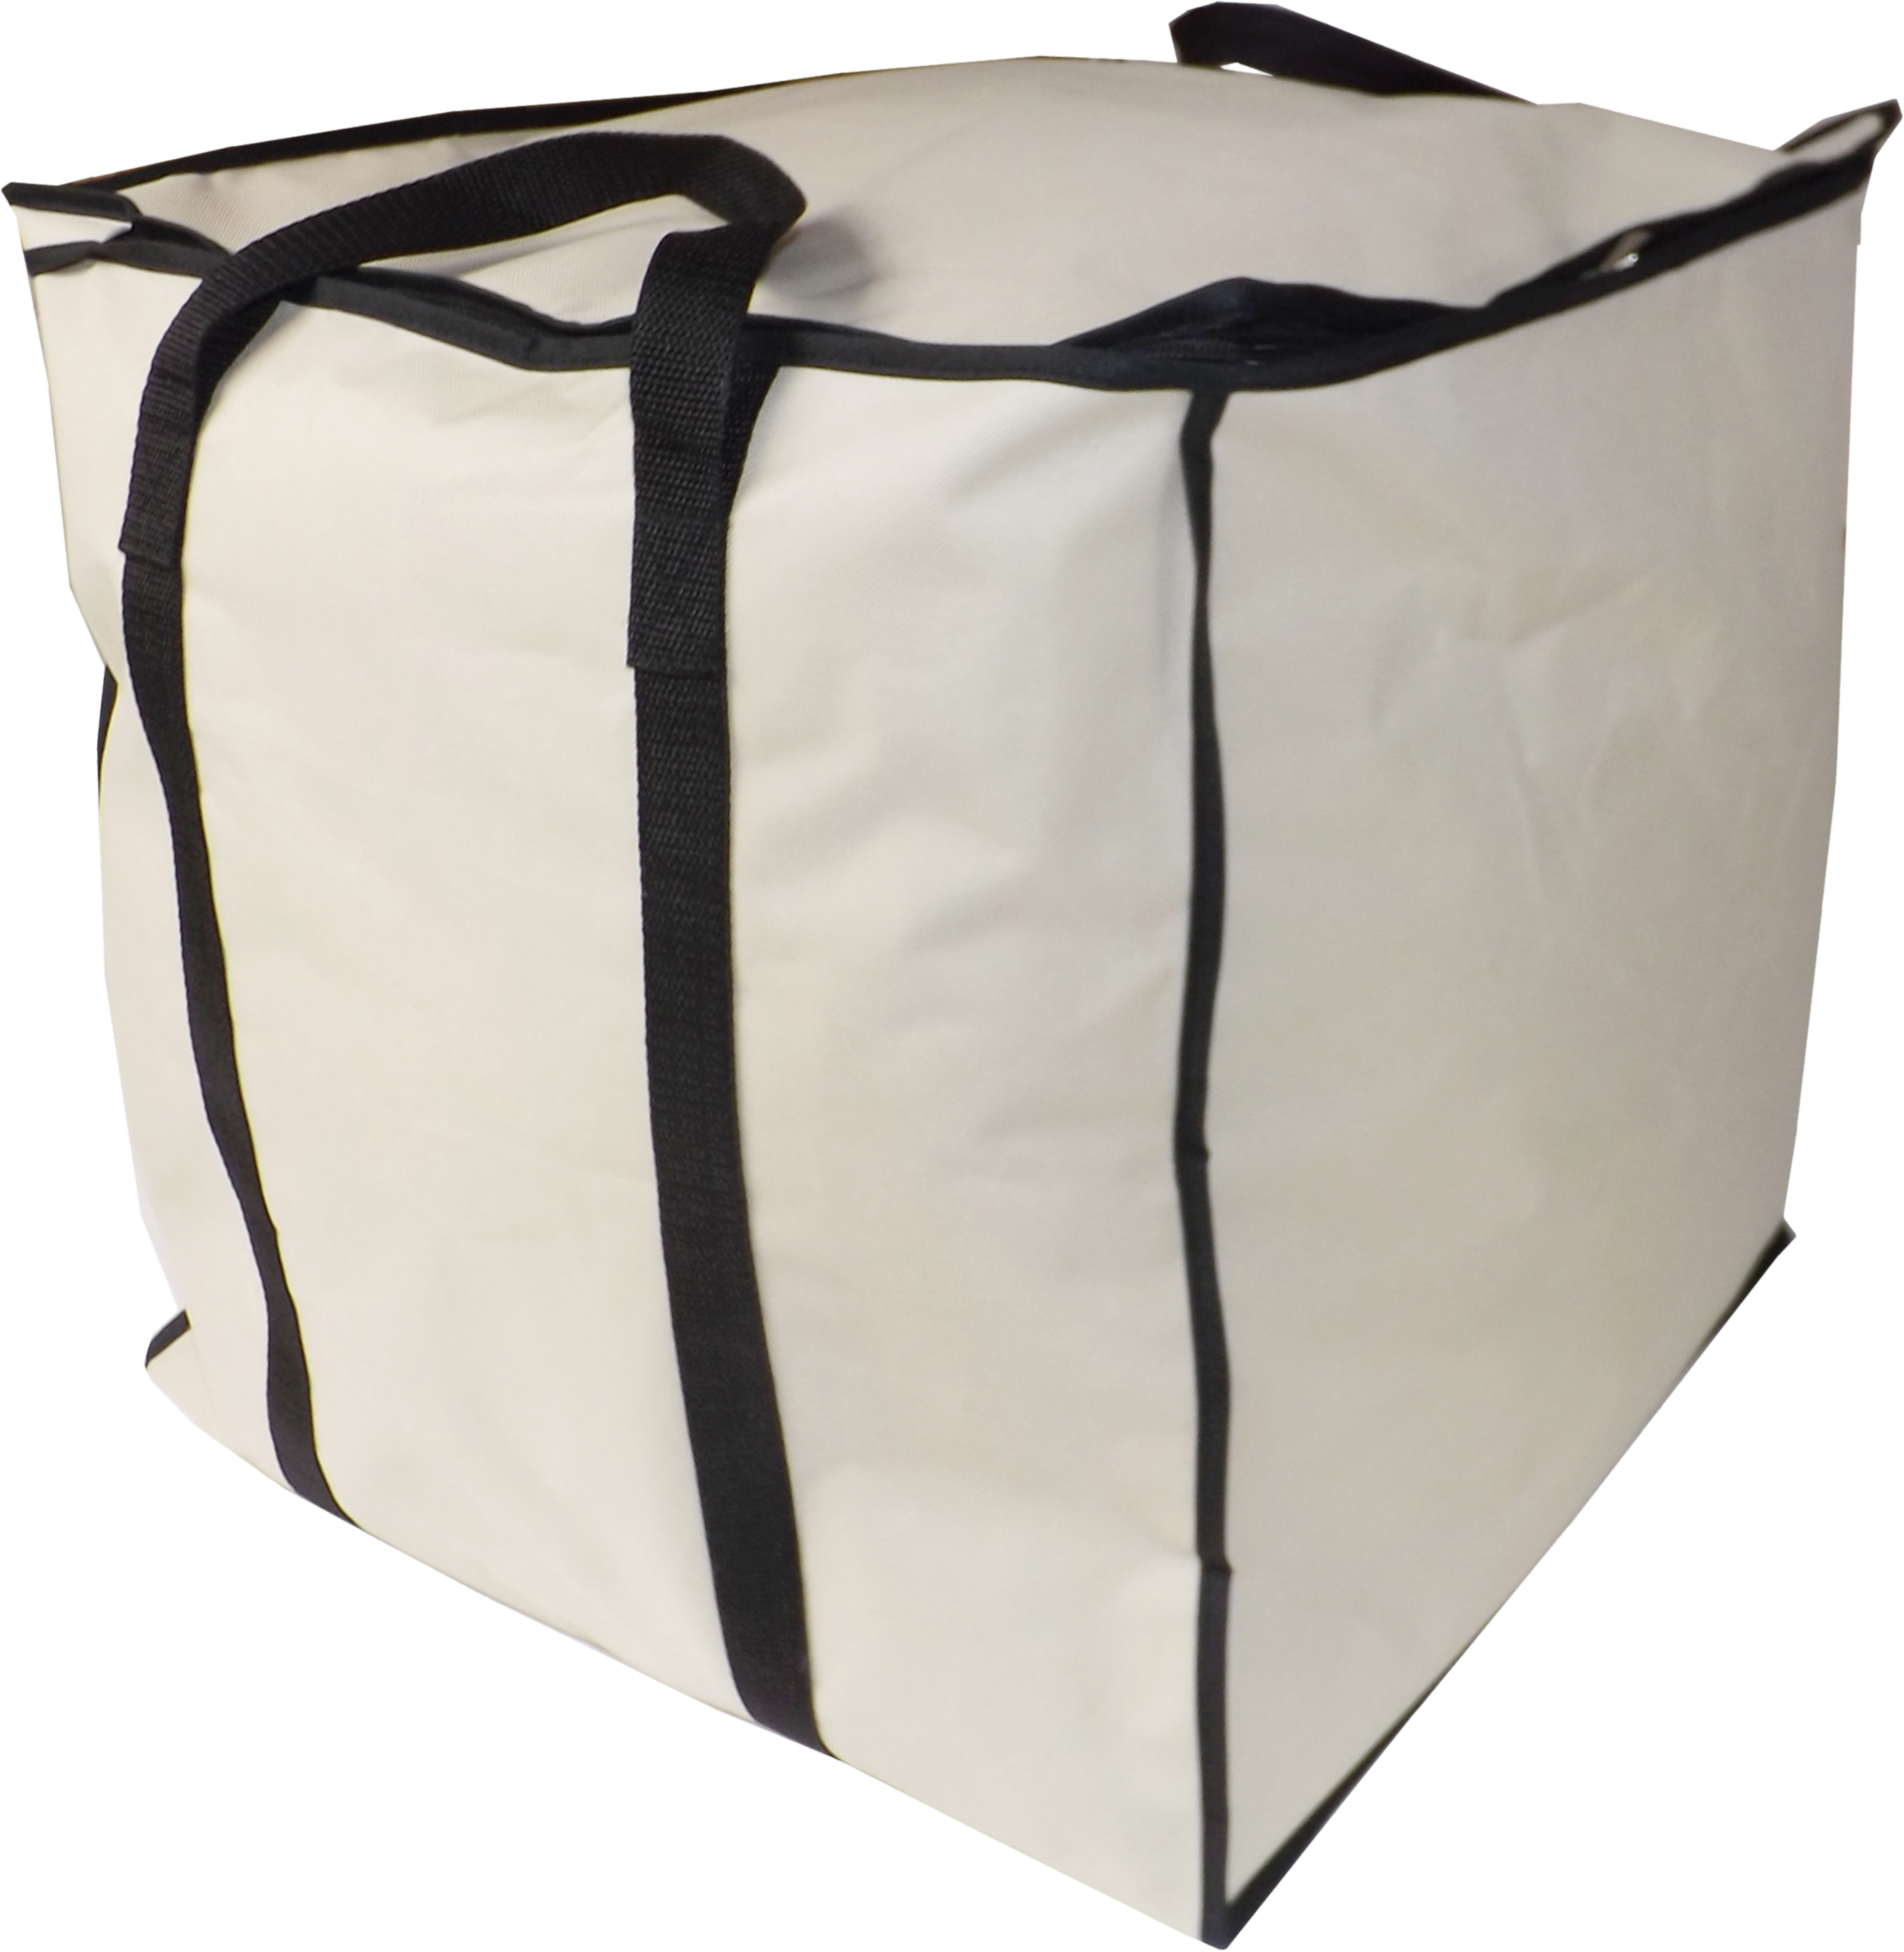 Large Bedding Storage Cube Bag With Strong Handles, Heavy Duty, 100 Litre Capacity, 47x47x47cm, Beige